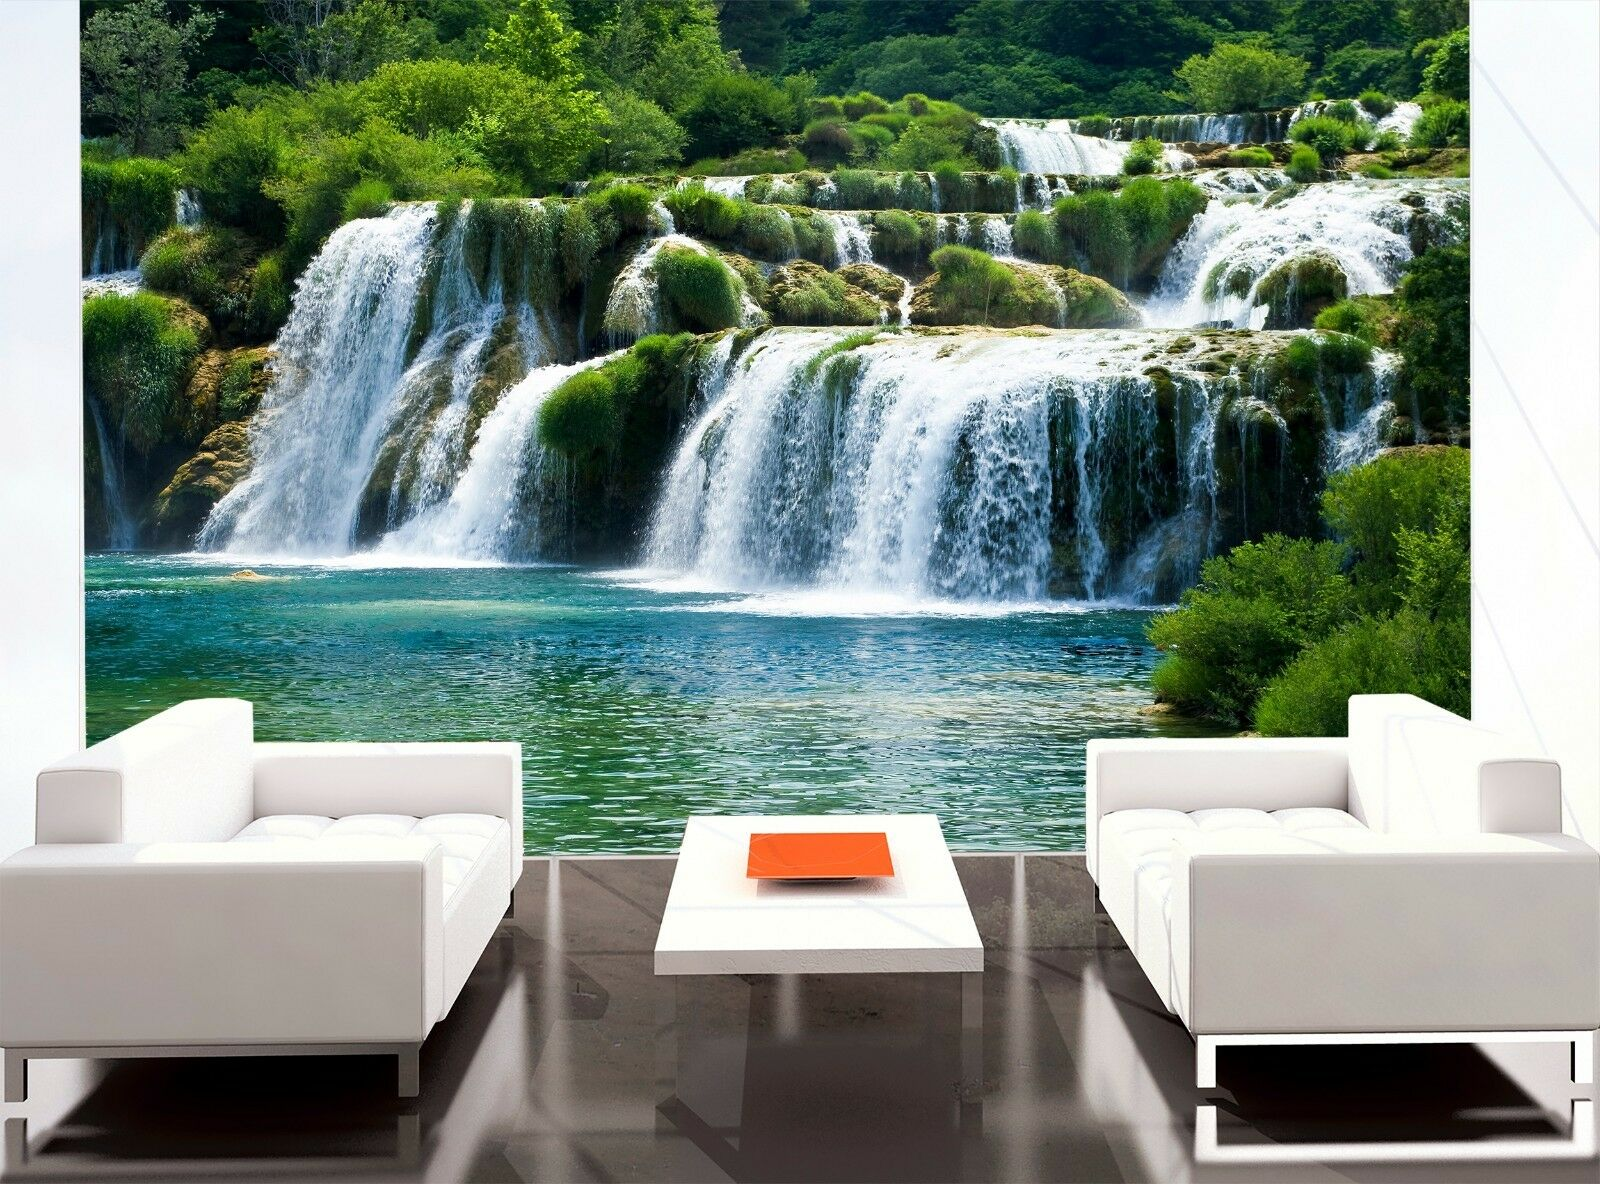 Beautiful Waterfalls   Wall Mural Photo Wallpaper GIANT WALL DECOR Free Glue